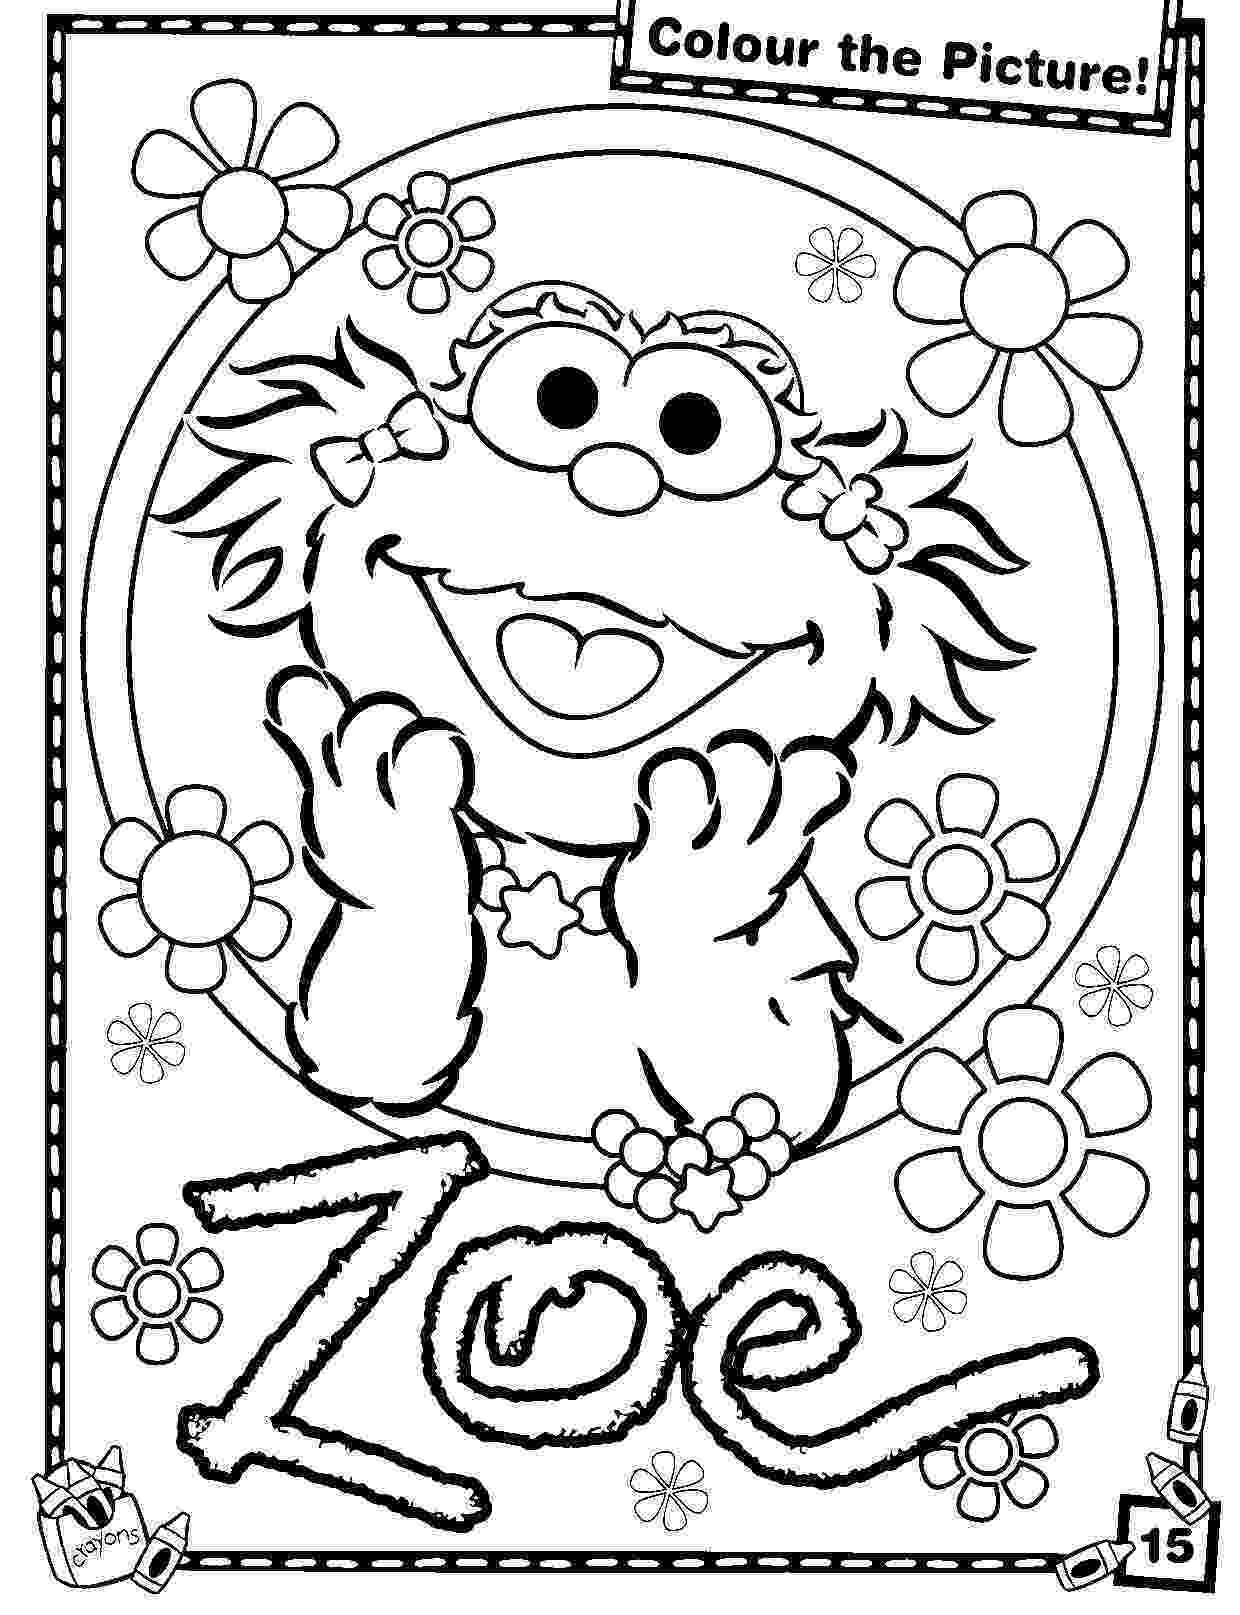 zoey 101 coloring pages 21 zoey 101 coloring pages download coloring sheets coloring pages 101 zoey